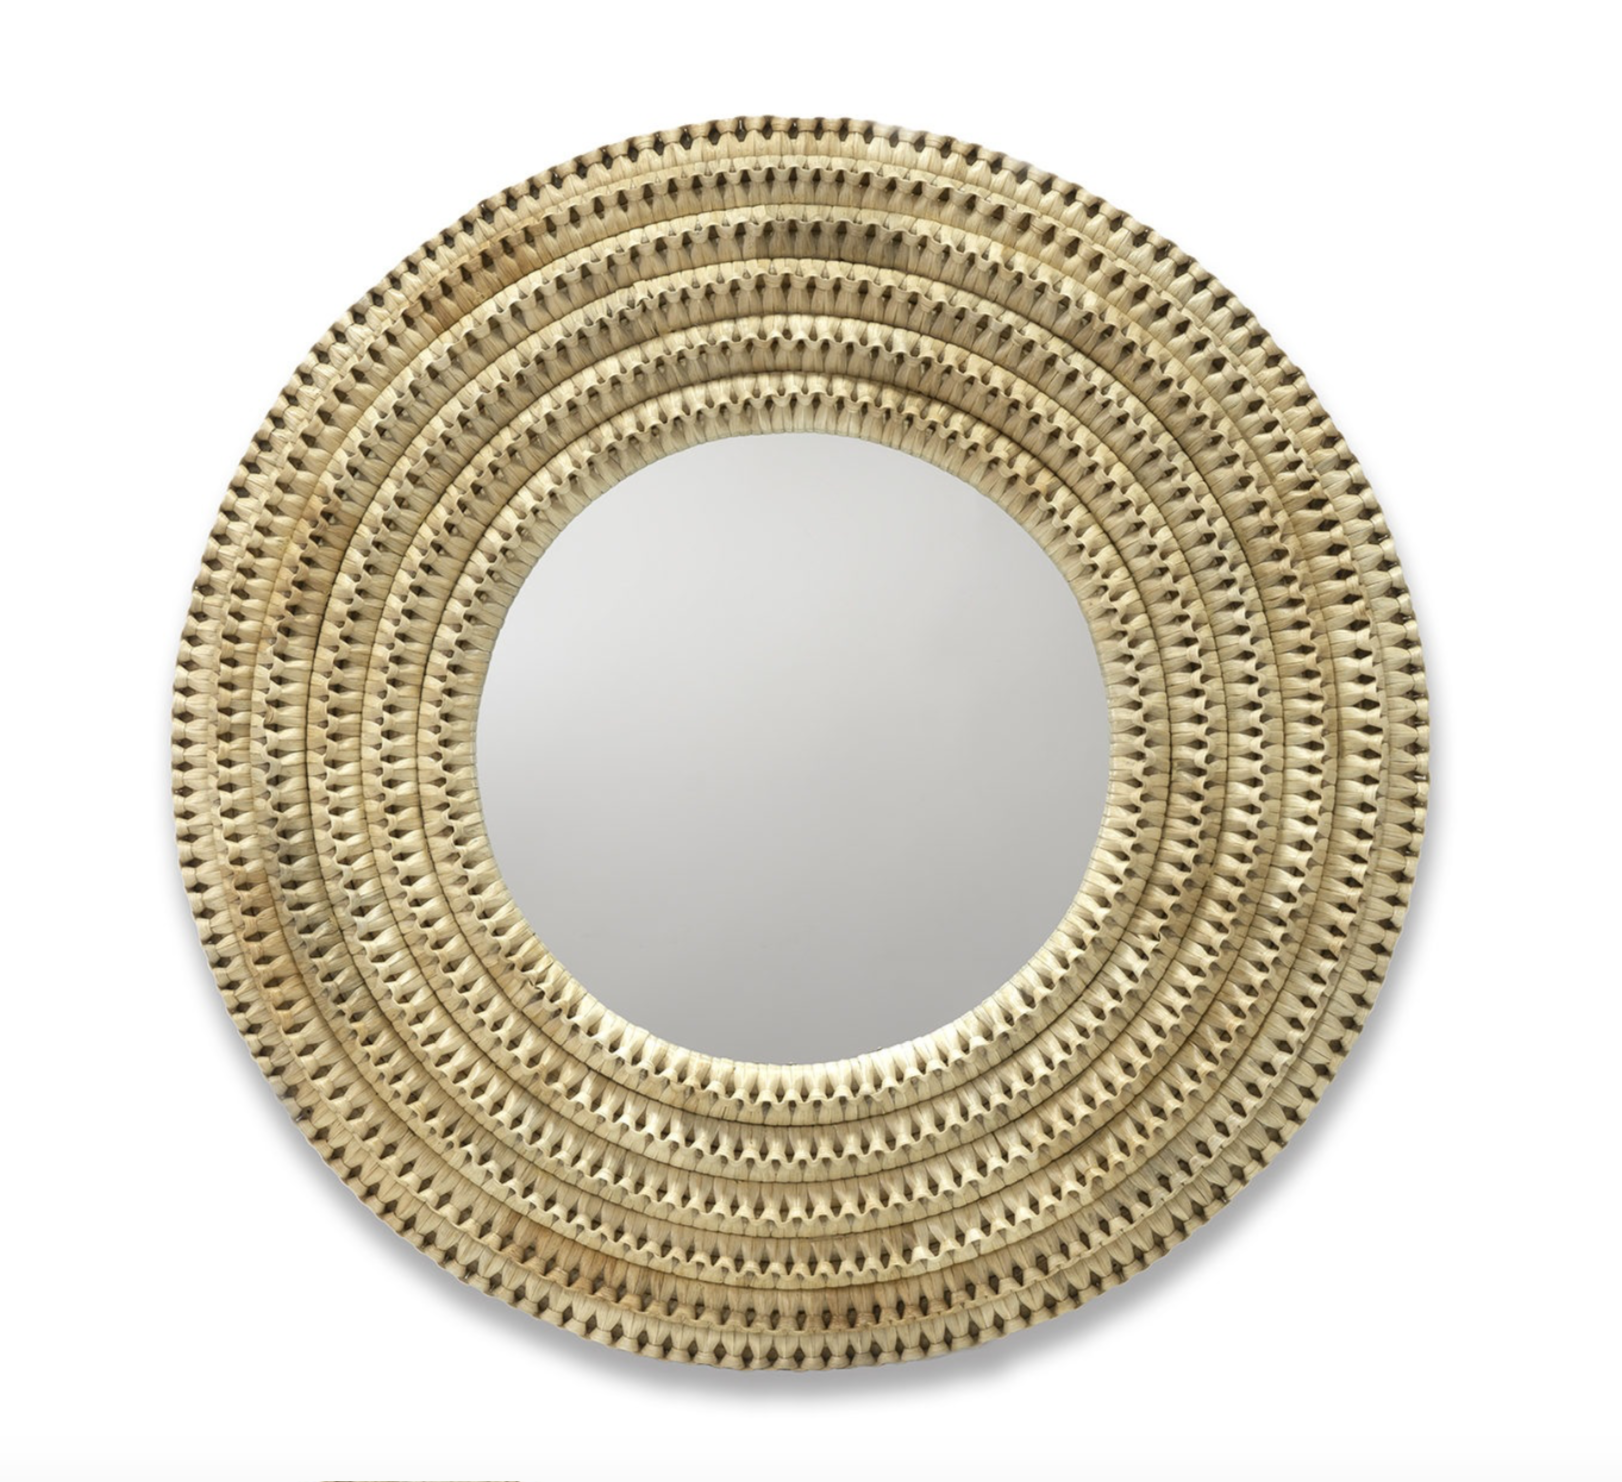 Braided Rattan Mirror